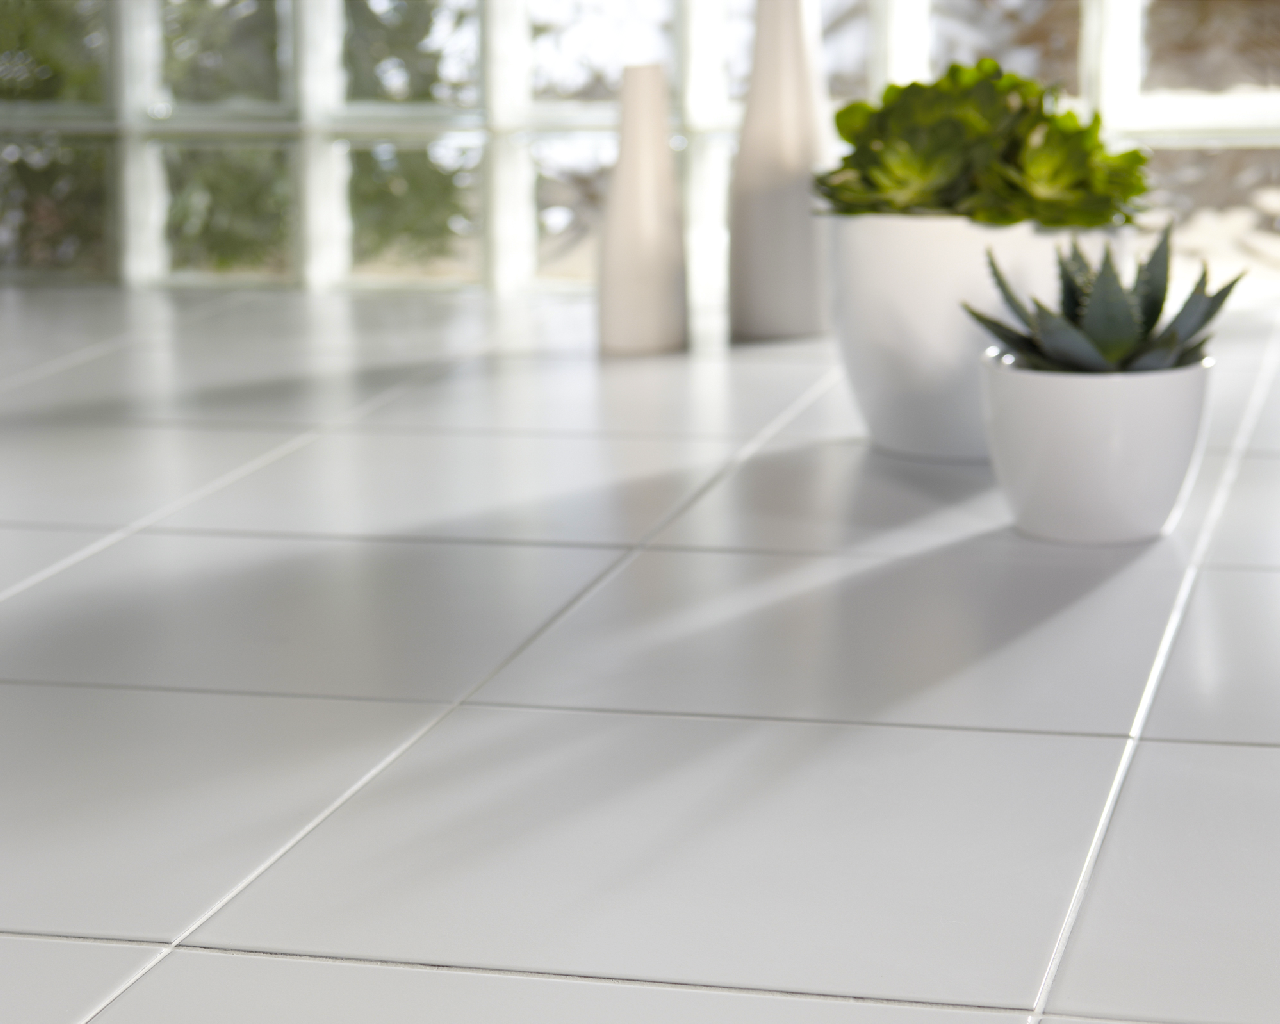 Matt white 20x20 wall and floor tile dailygadgetfo Choice Image